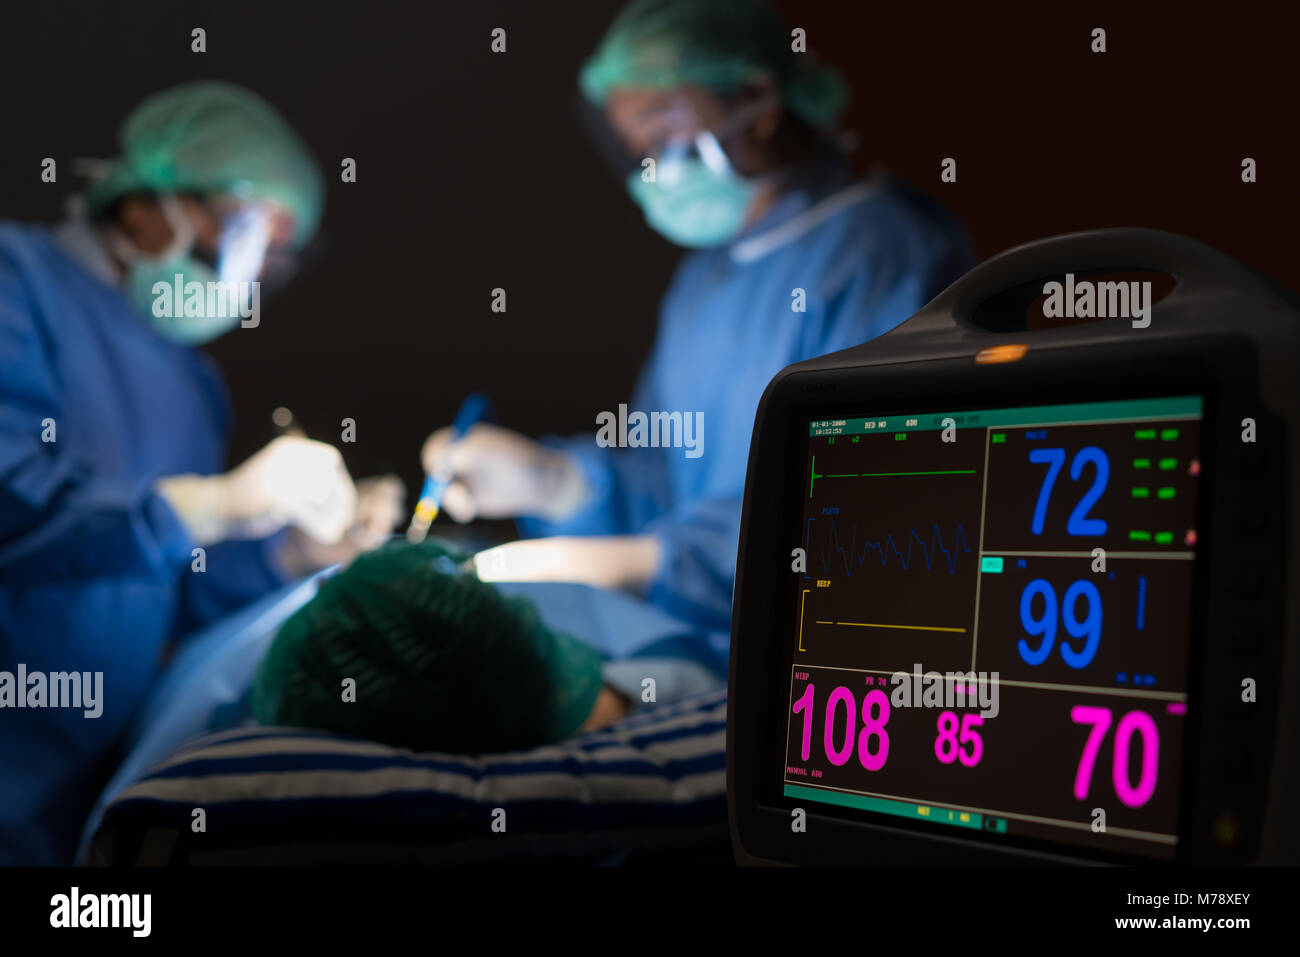 Electrocardiogram in hospital surgery operating emergency room showing patient heart rate with blur team of surgeons - Stock Image